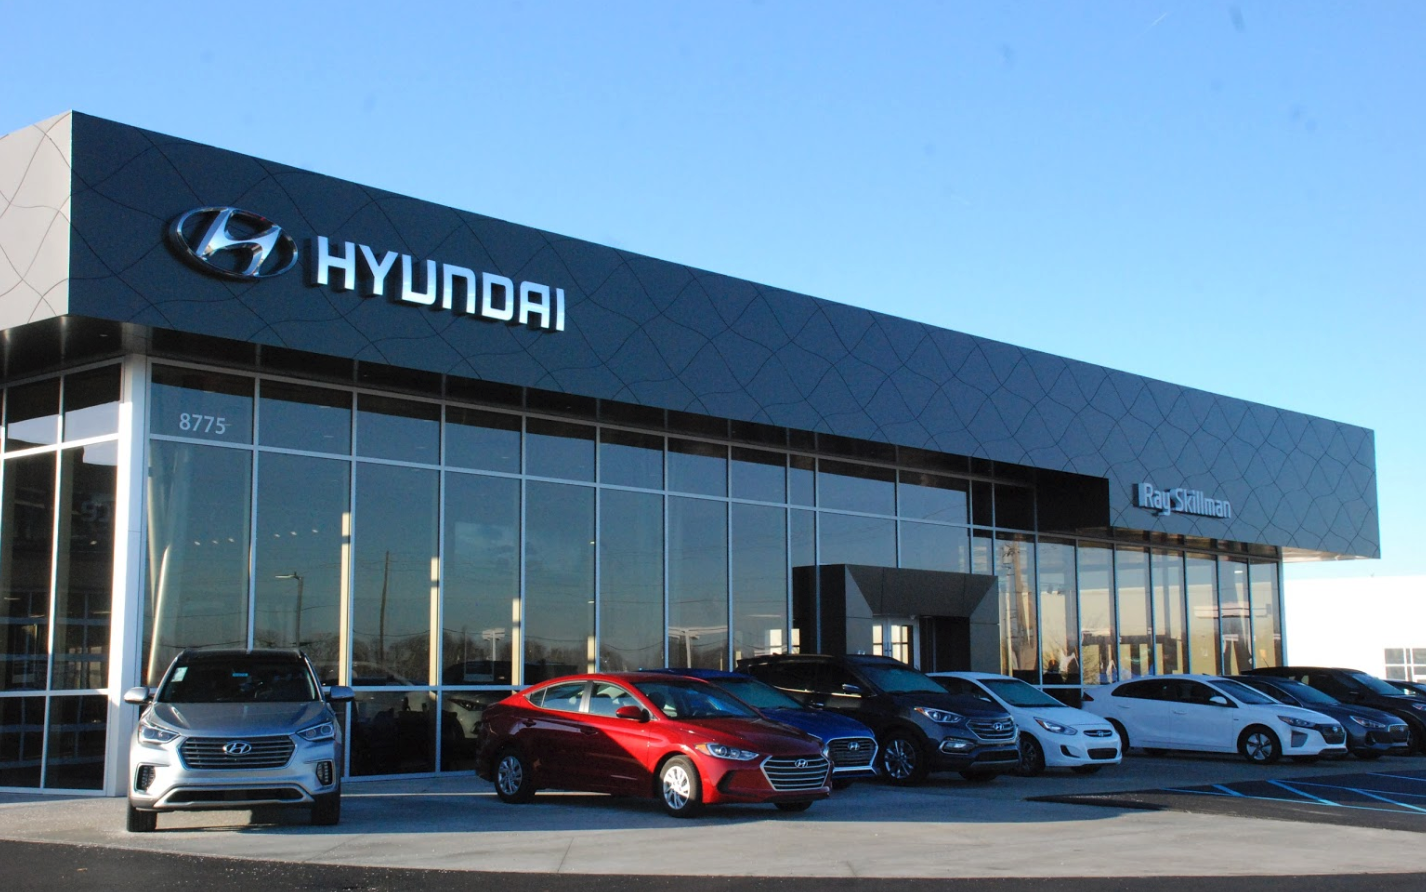 avenue is used and located s salesteam seaway in at import premier volume hyundai area about dealerships dealership rosemount us highest car cornwall dealer our on the